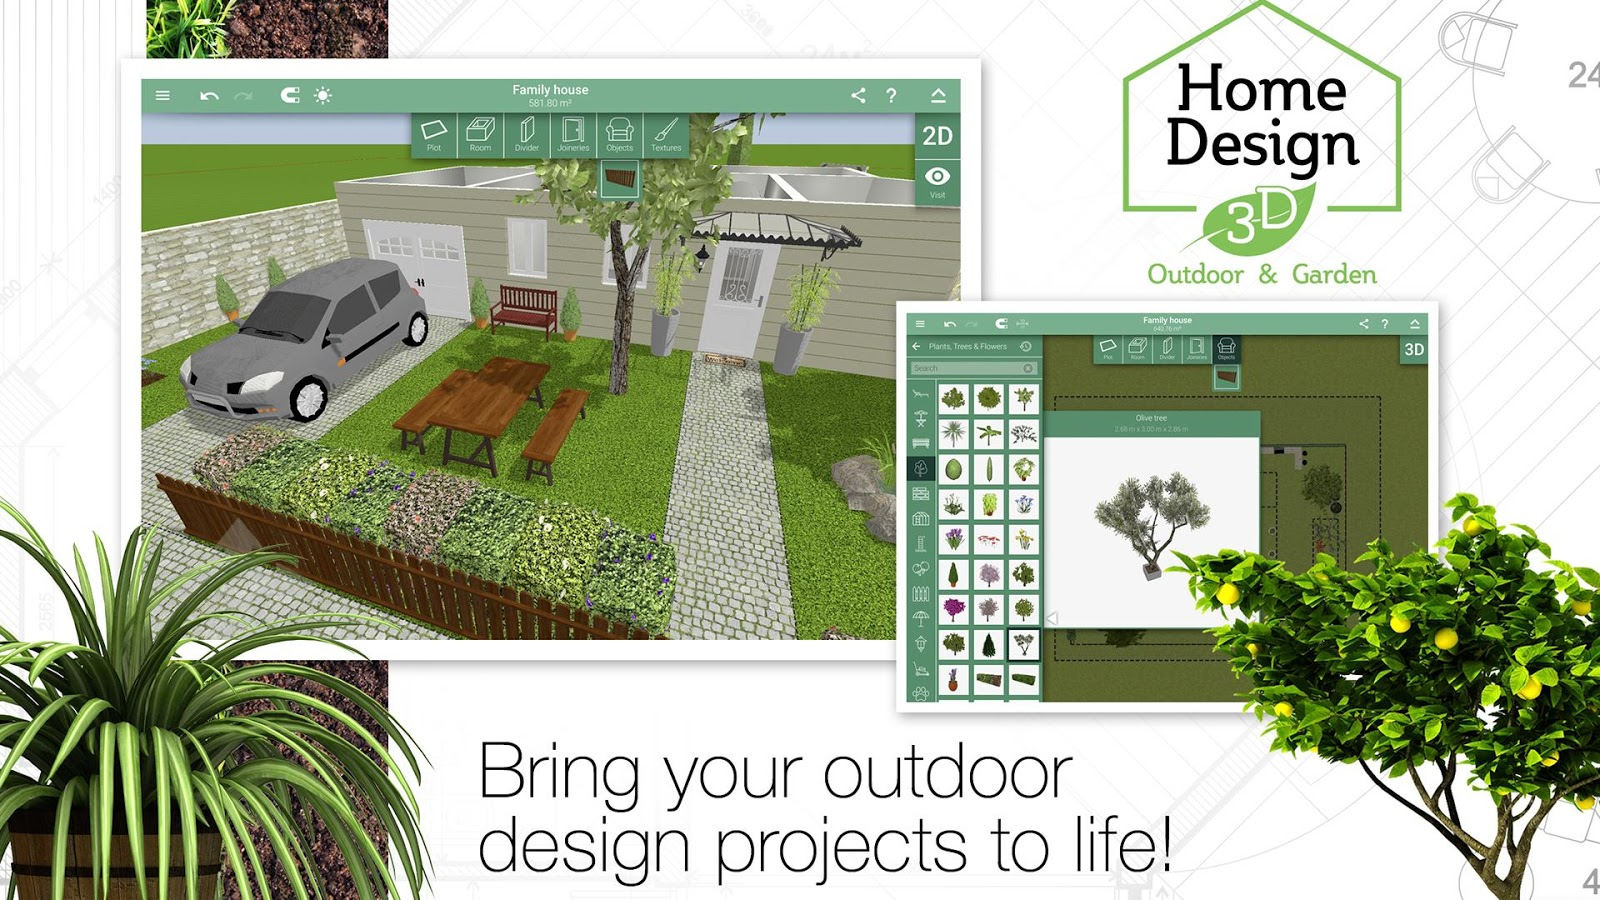 Home design 3d outdoor garden android apps on google play for 3d garden design